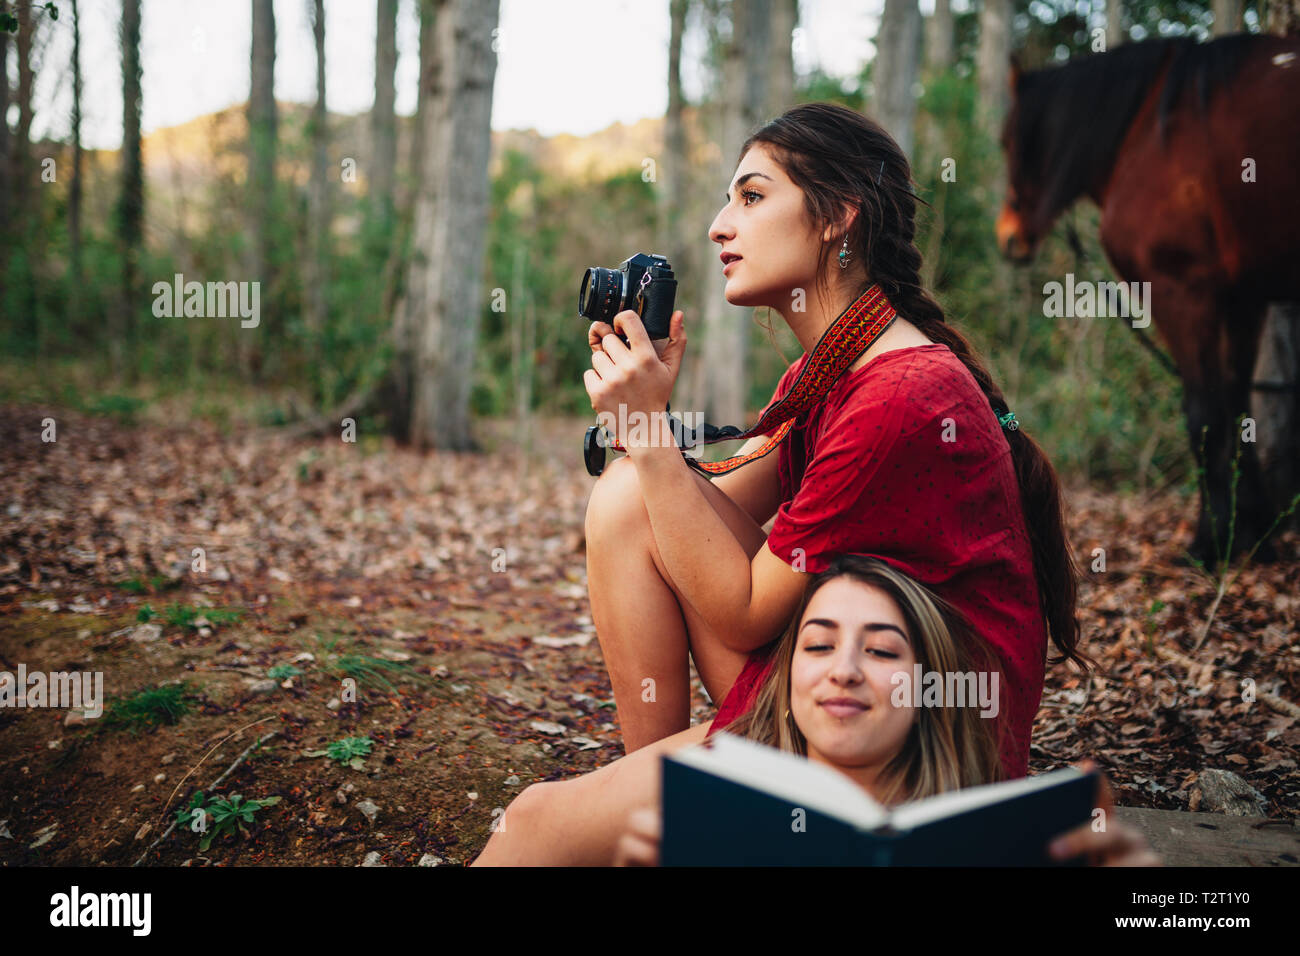 Young smiling couple of women wearing dresses reading a book and taking photos with old camera in the forest with their horse. - Stock Image